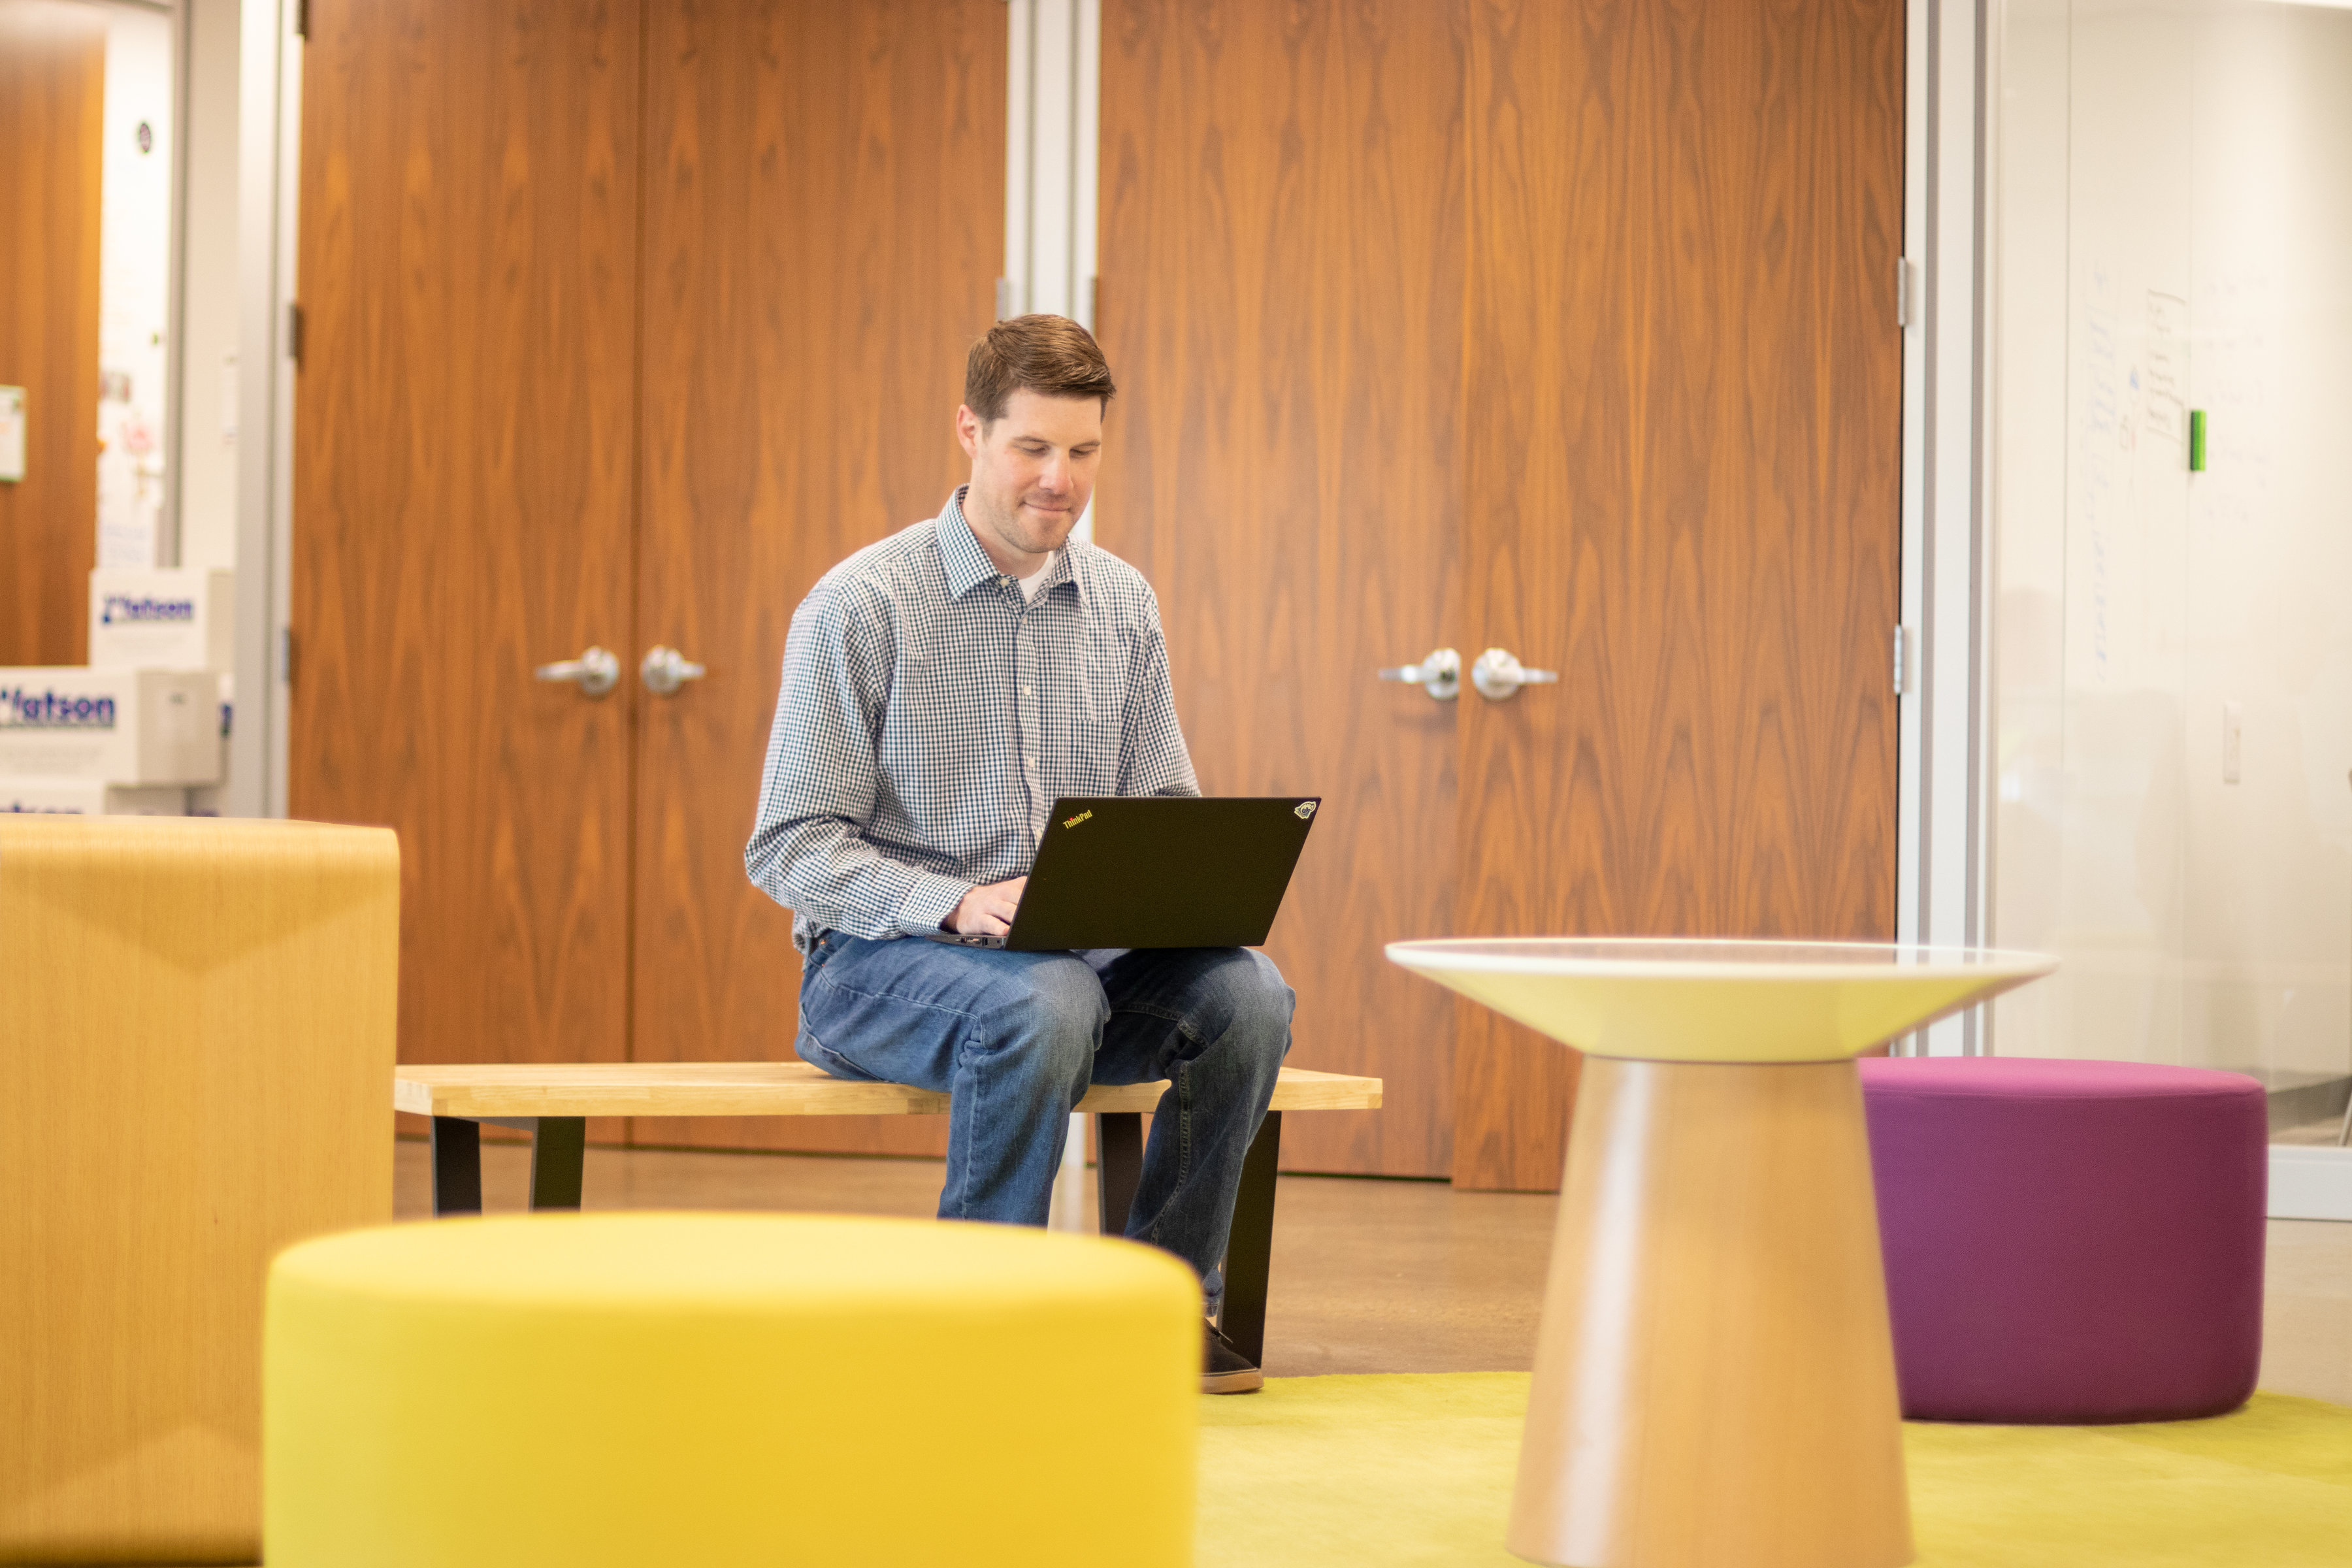 Disengaged employee in office on laptop